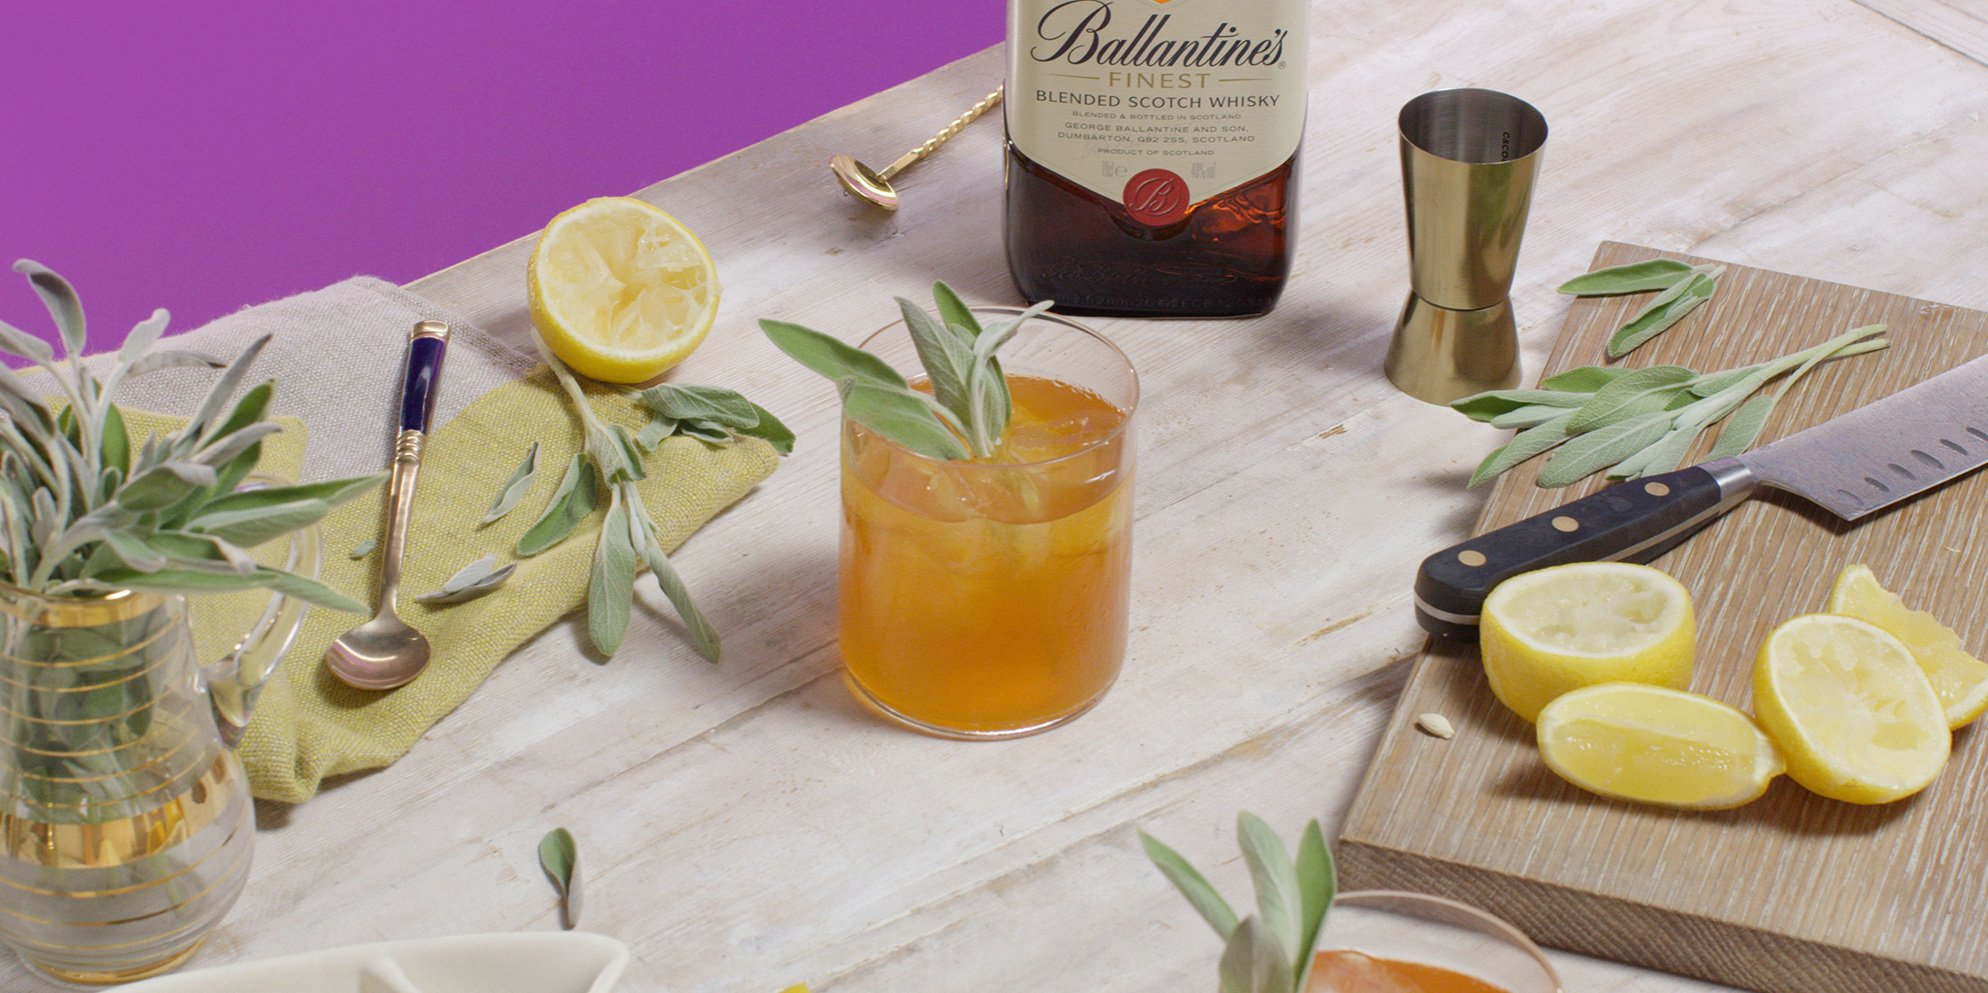 Whisky Cocktails | Gold Rush | Sweet & citrusy | Ballantine's